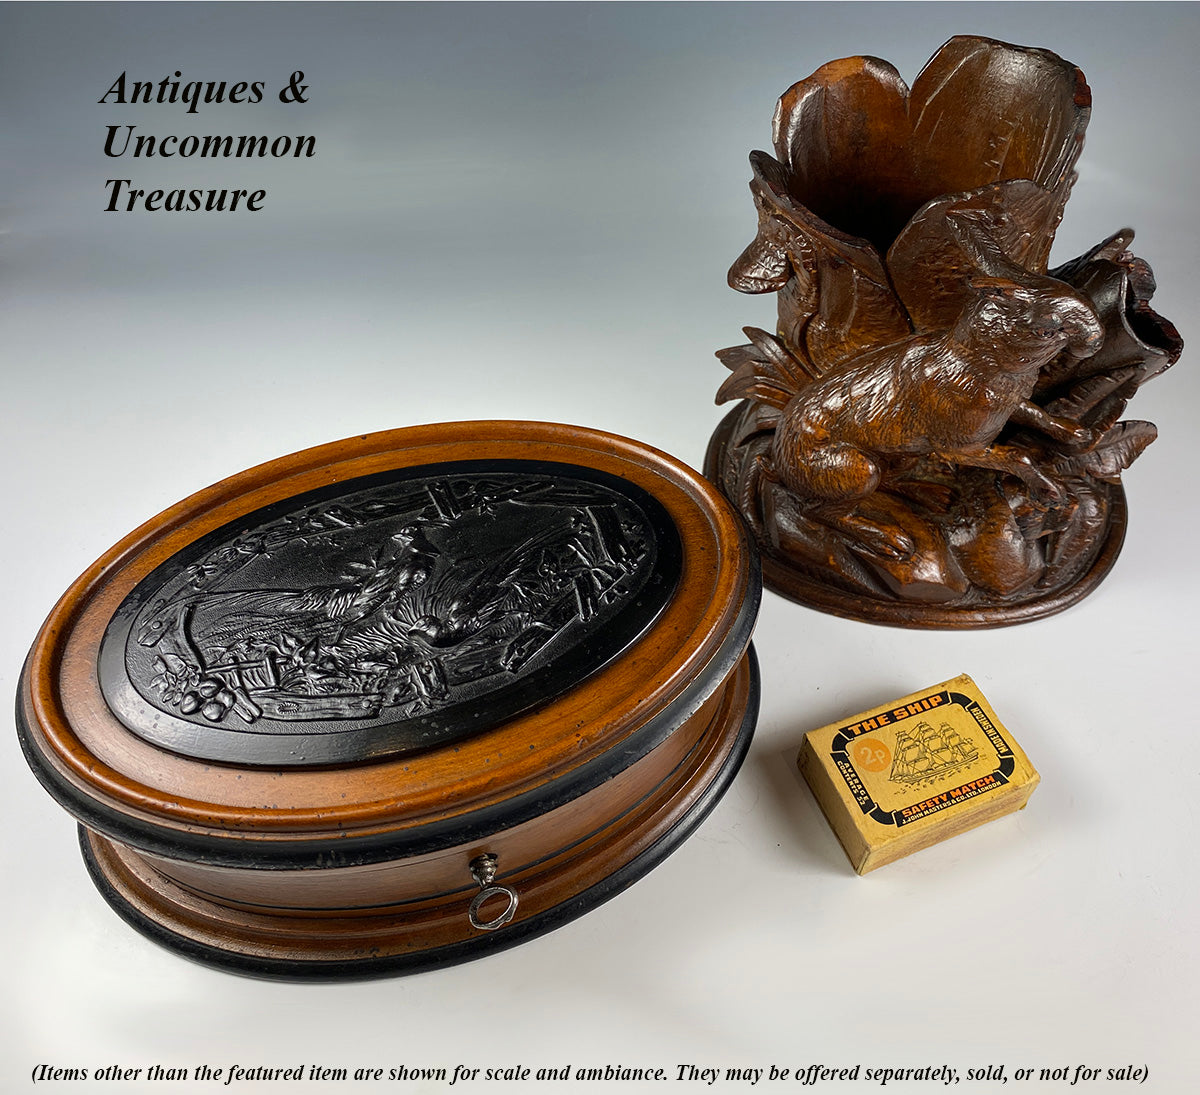 Antique French Jewelry Box, Casket with Key and Hunt Scene in Gutta Percha up top with Pheasants